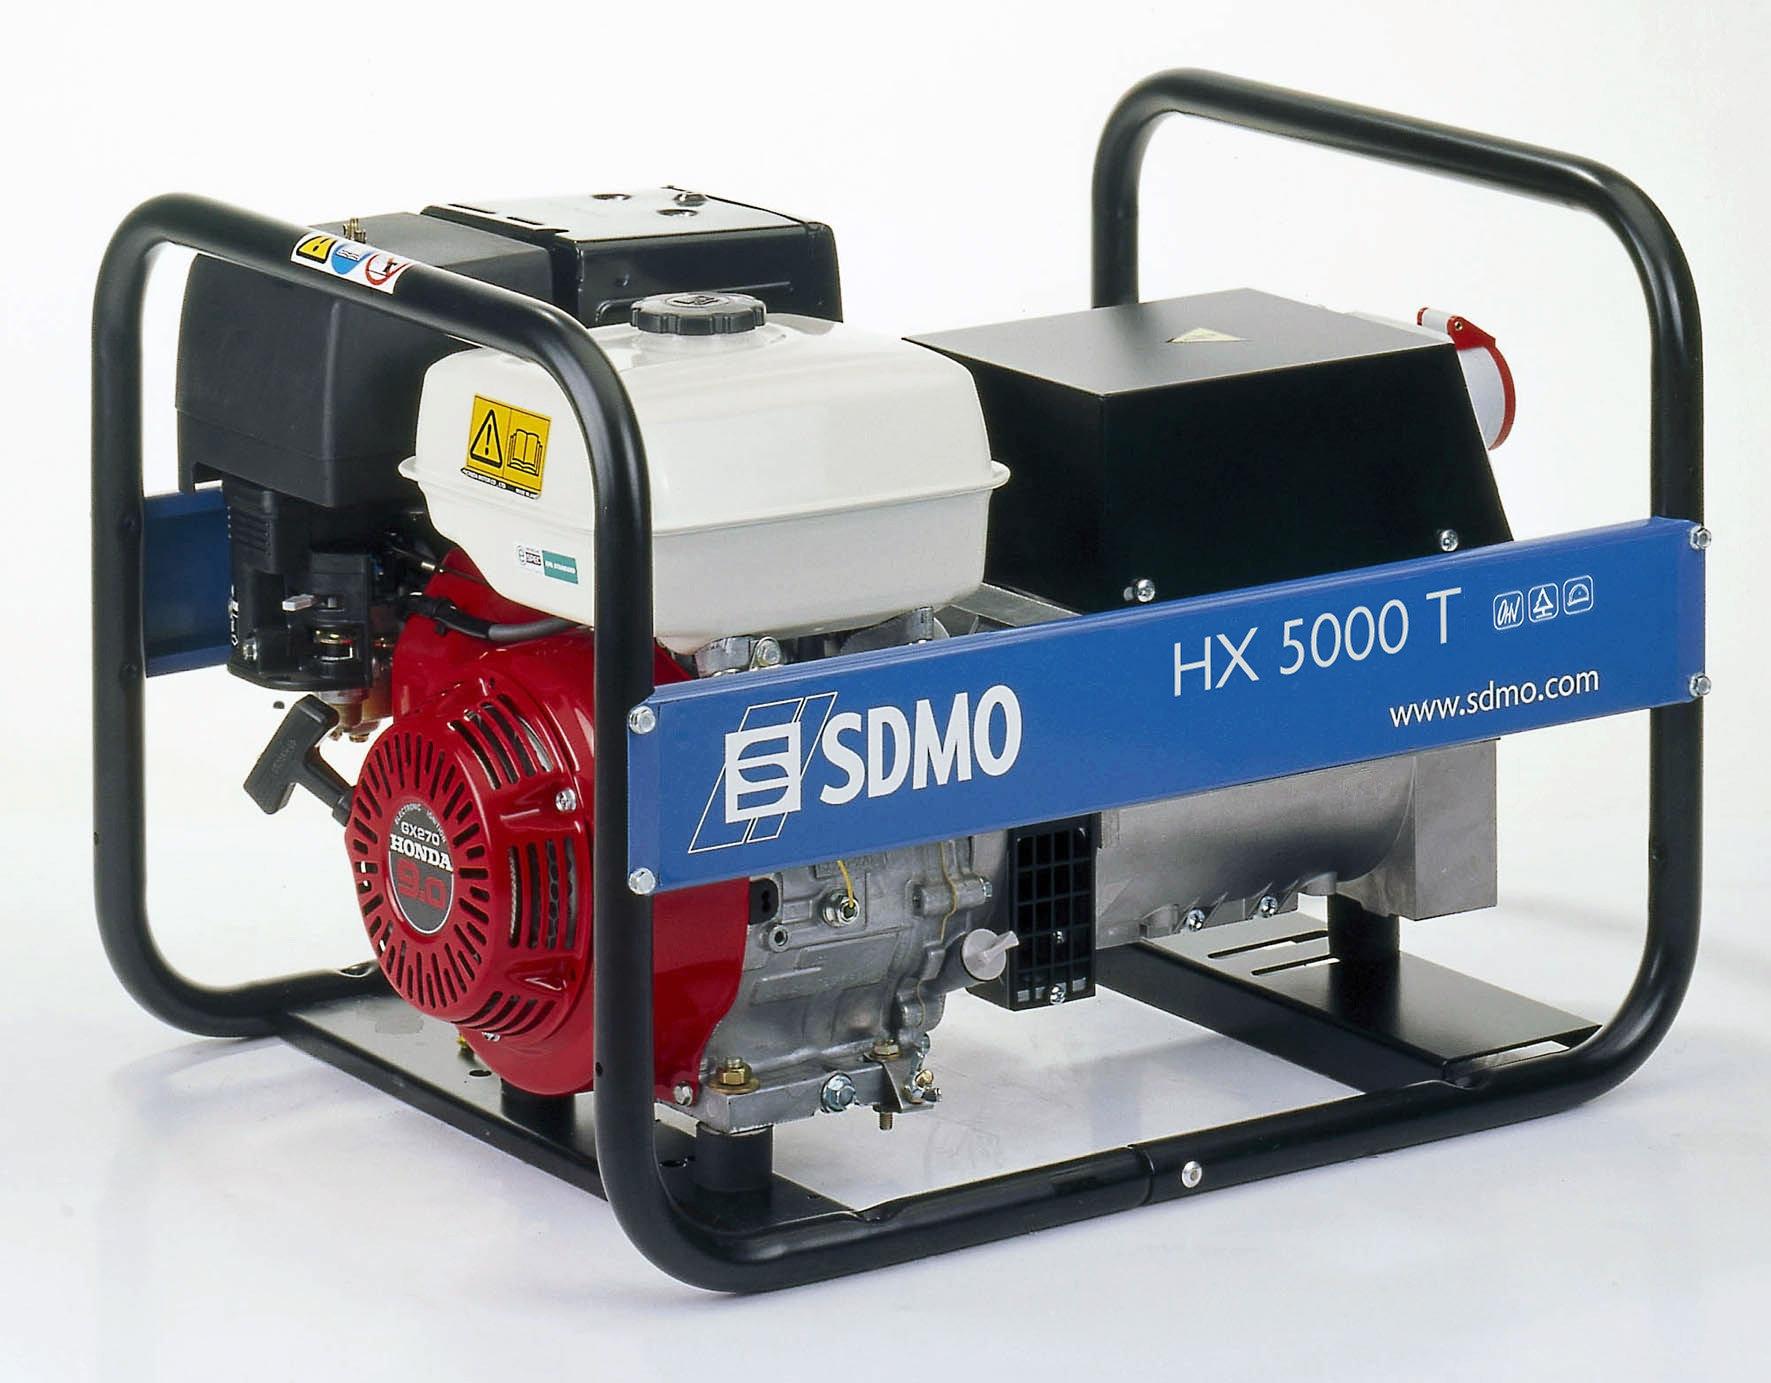 SDMO Portable Power HX5000T